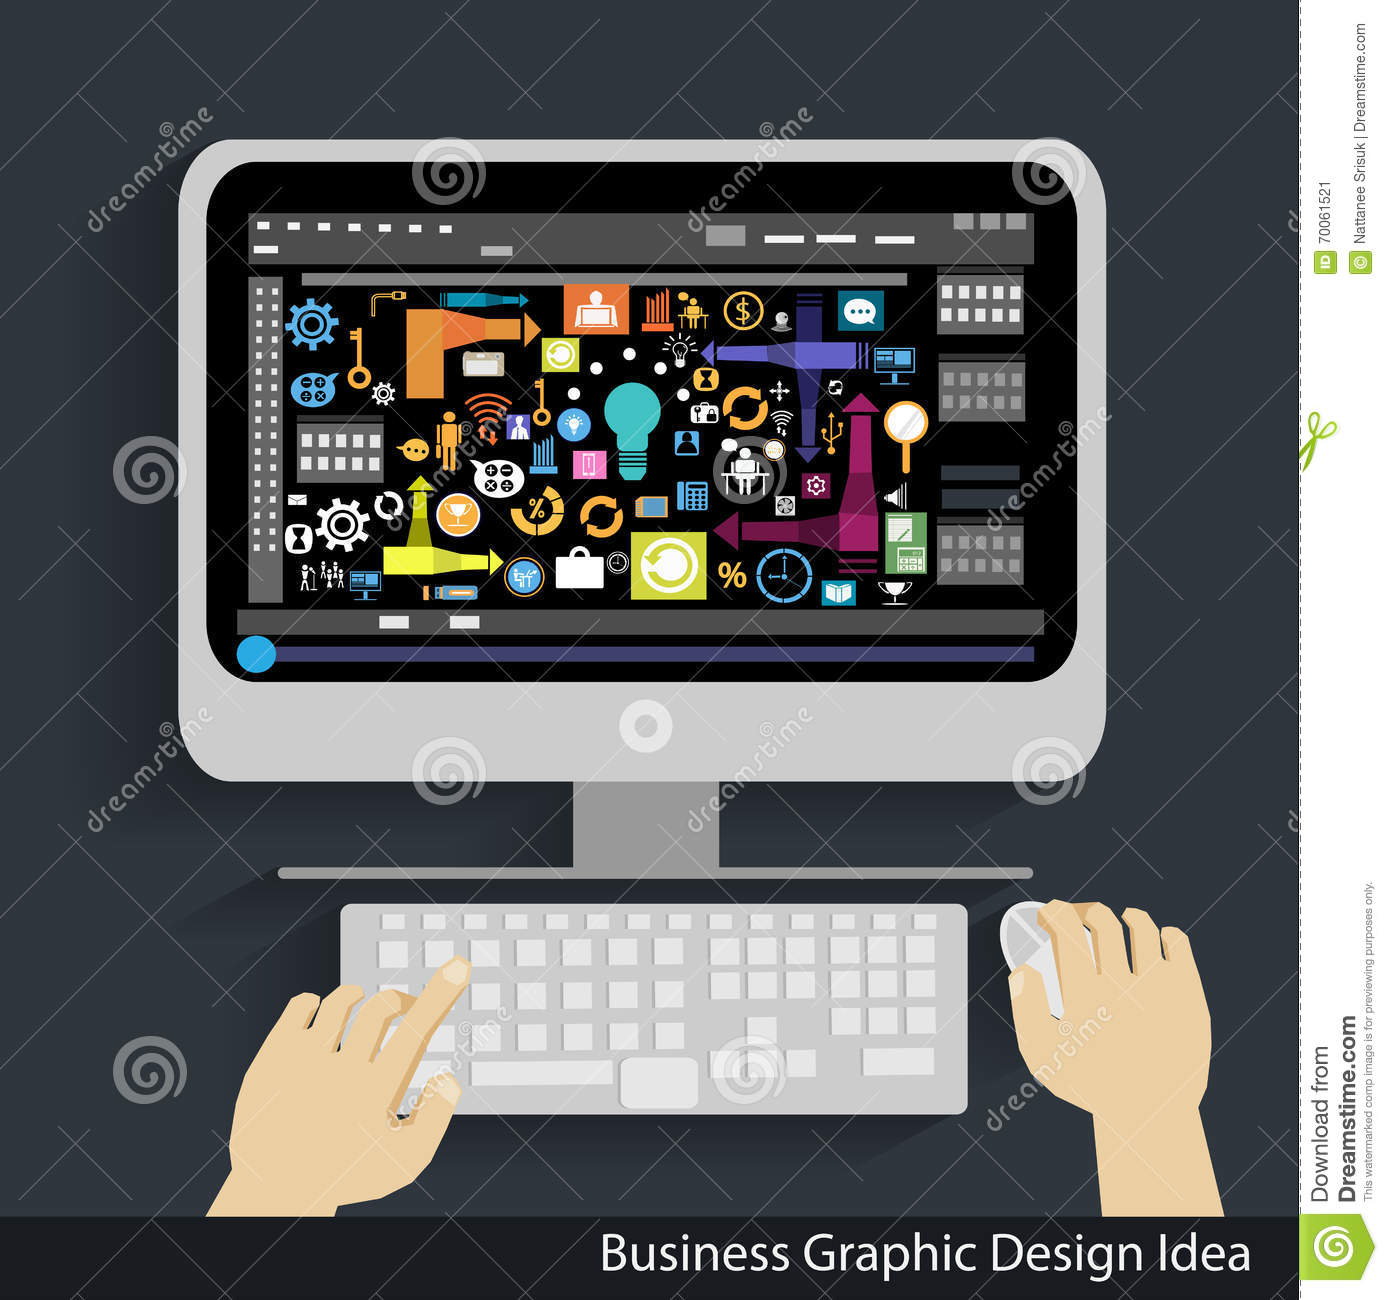 Business Ideas Graphic Design Business Ideas Designer Business Top